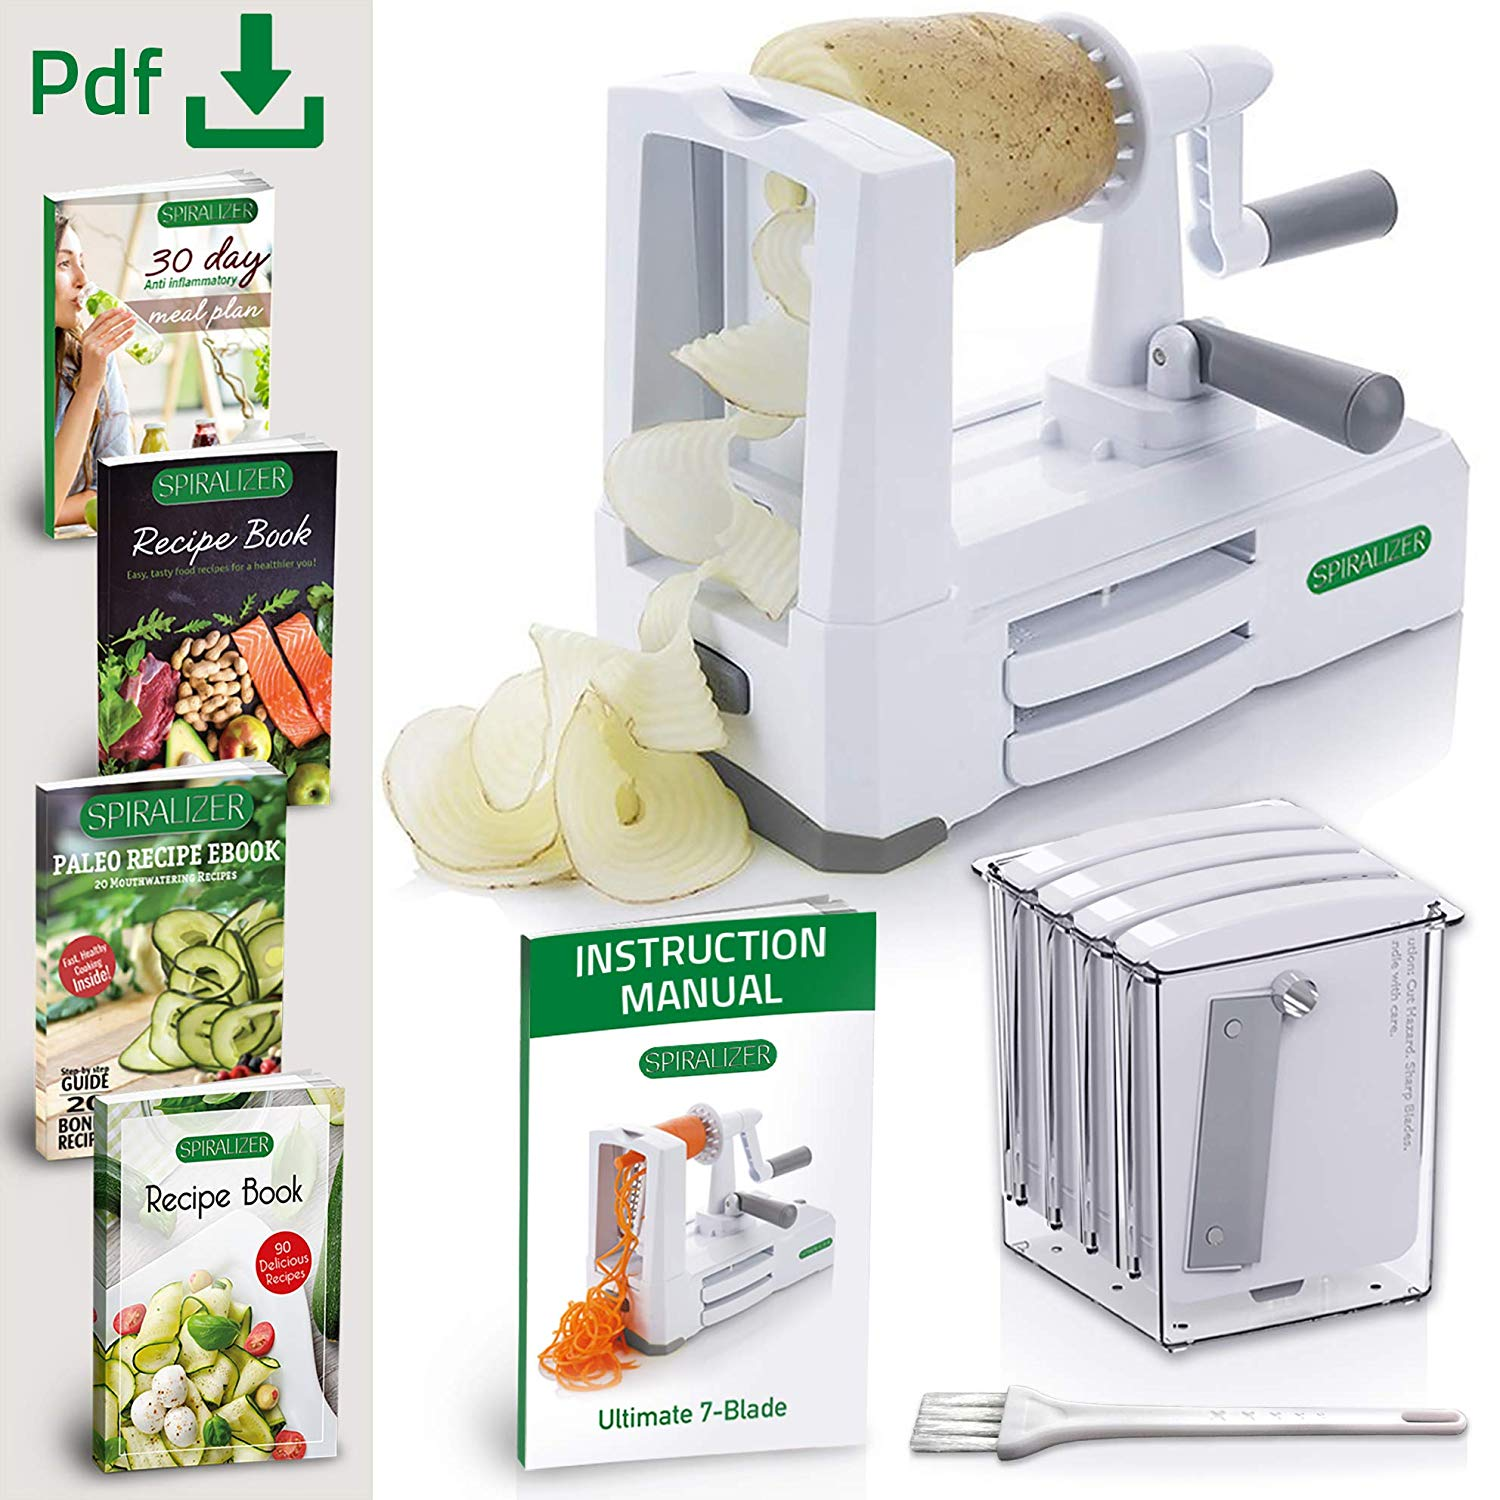 Spiralizer Ultimate 7-Blade Vegetable Slicer - Beautifully shred, slice and chip most firm vegetables and fruits. Perfect for making quick low carb, healthy veggie noodles from firm fruits/veggies like apple, onion, carrot, zucchini, cucumber, cabbage, beet, & more.